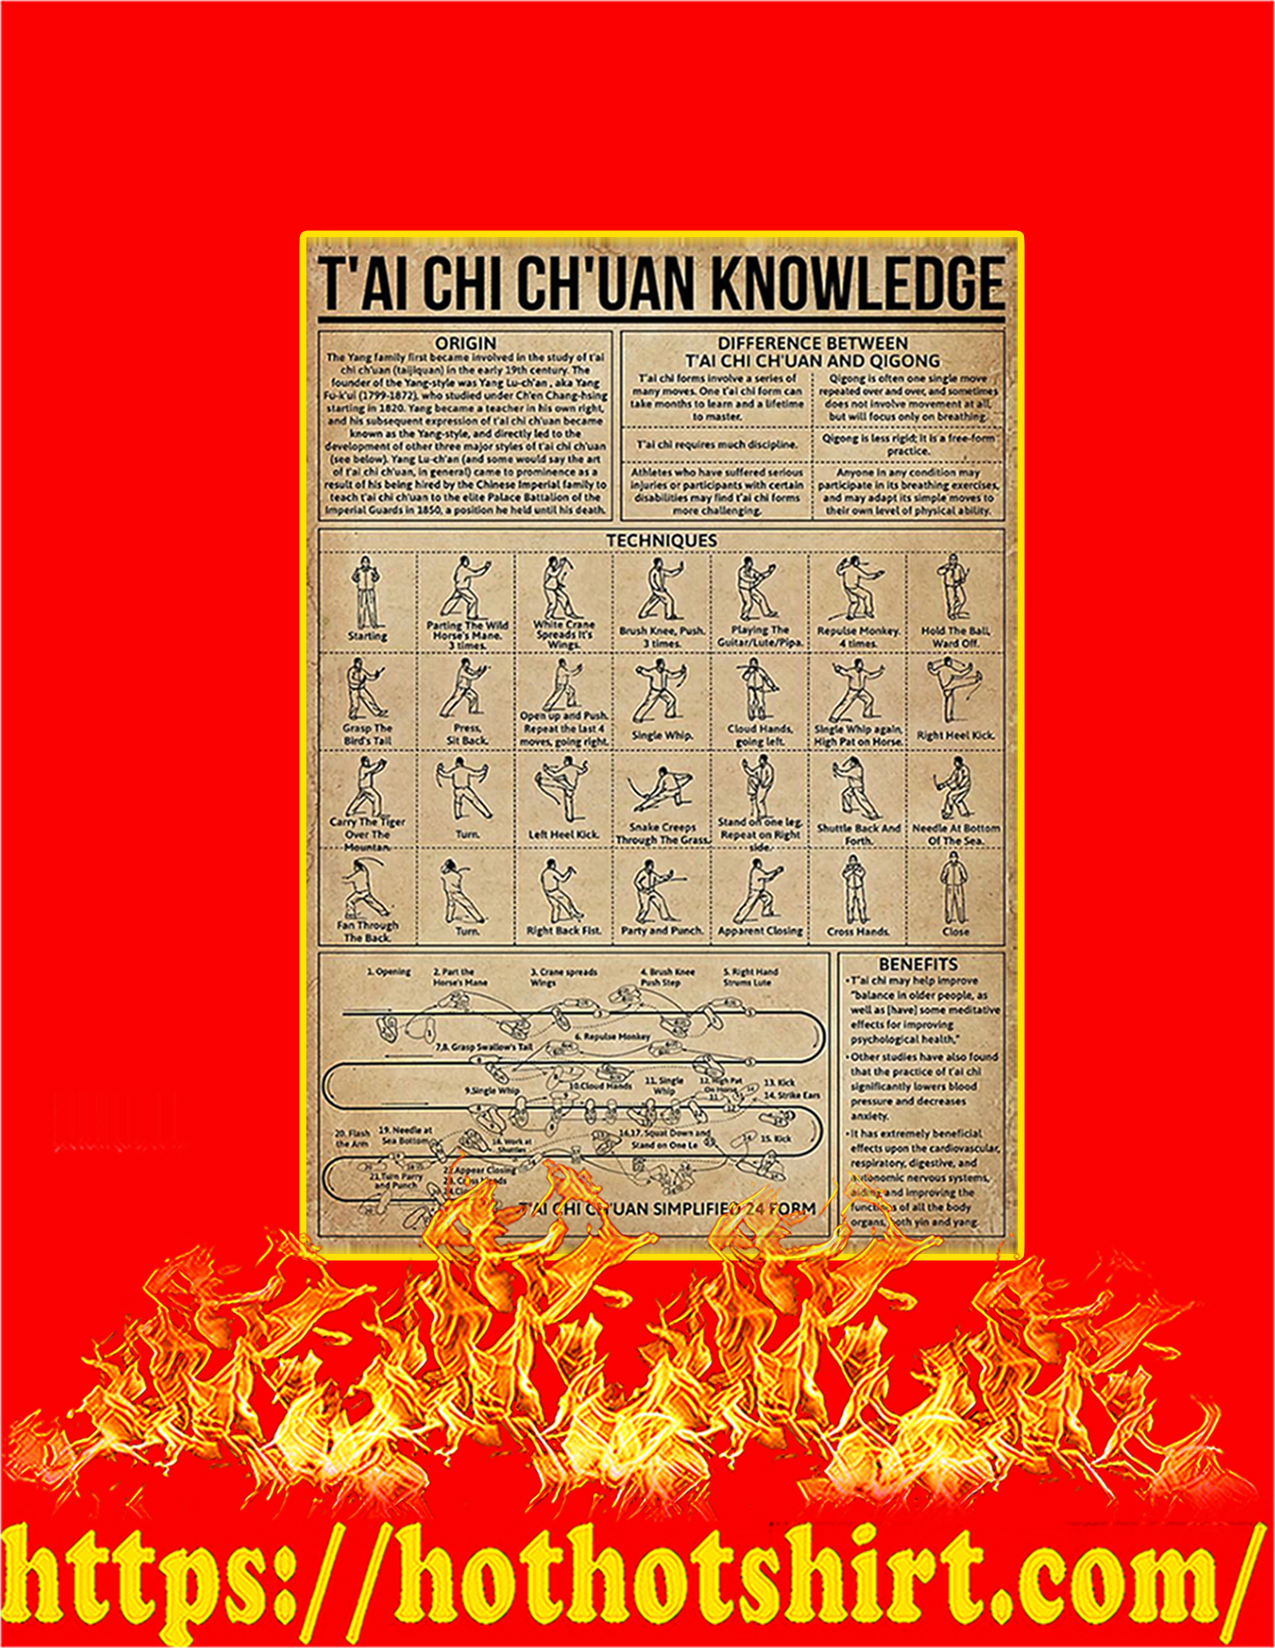 T'ai chi ch'uan knowledge poster - A2